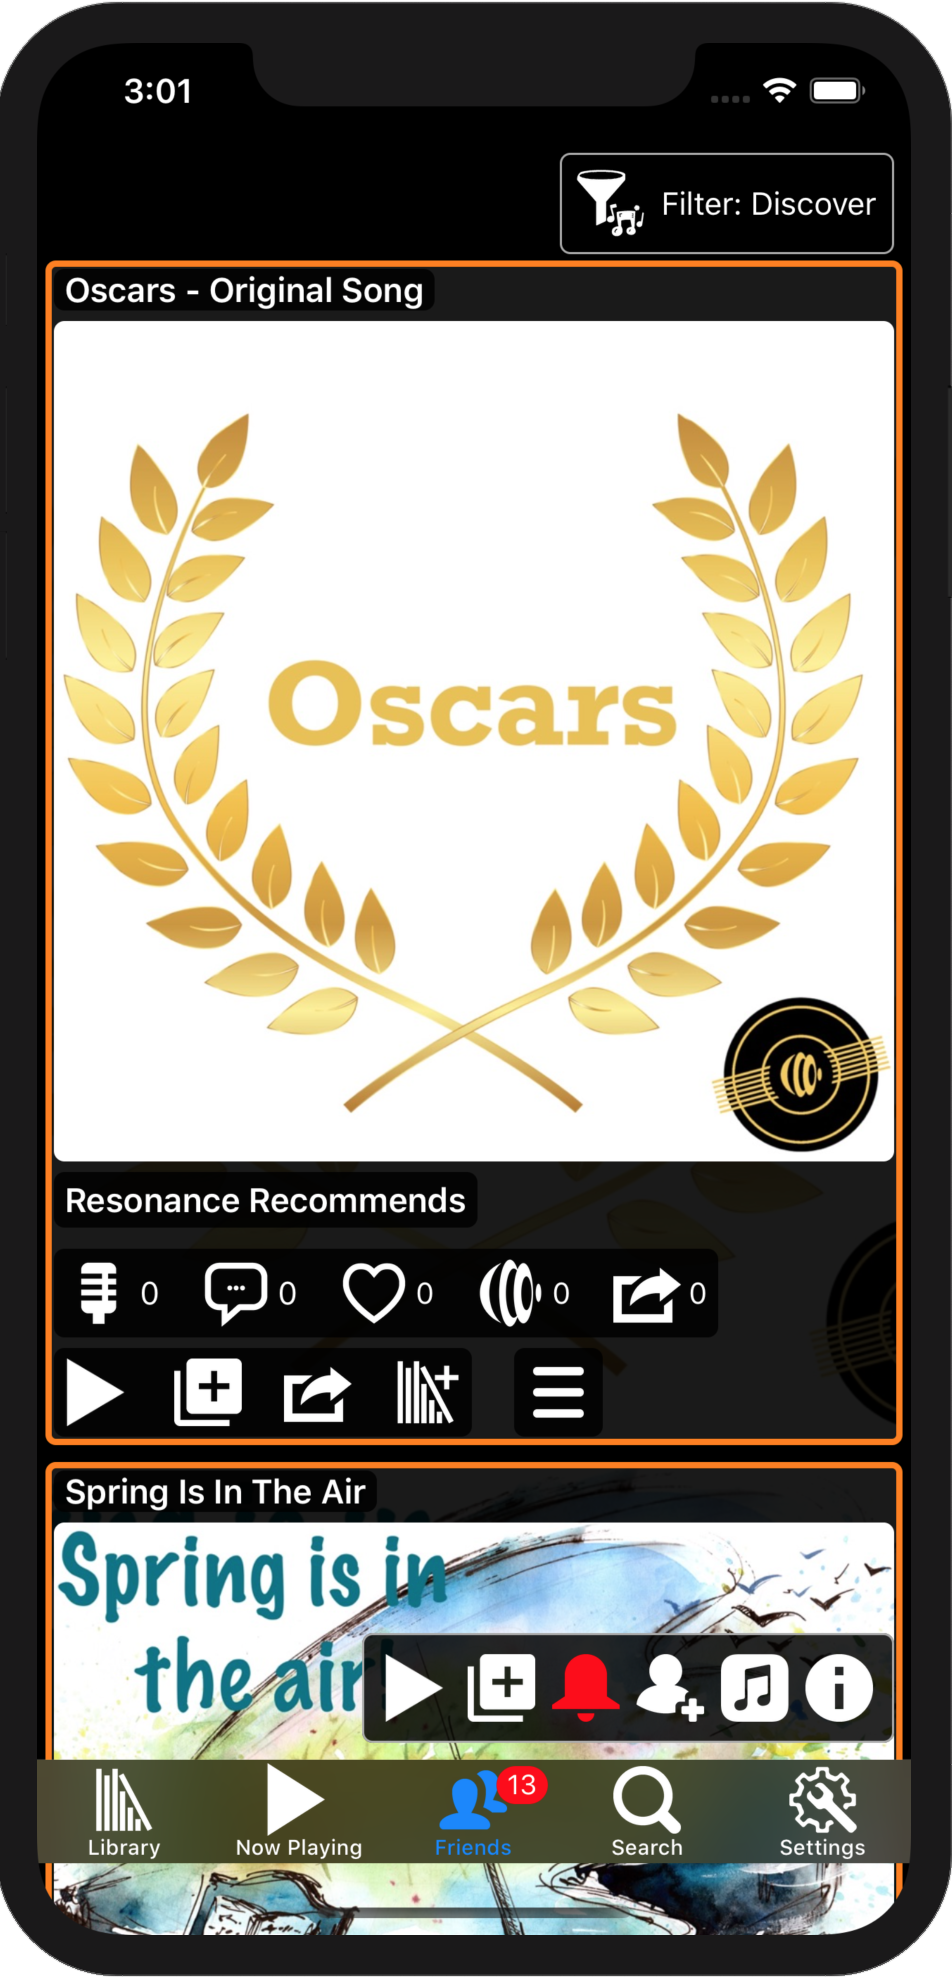 Image showing the an event themed Oscars playlist for Academy Awards in the music feed on an iPhone